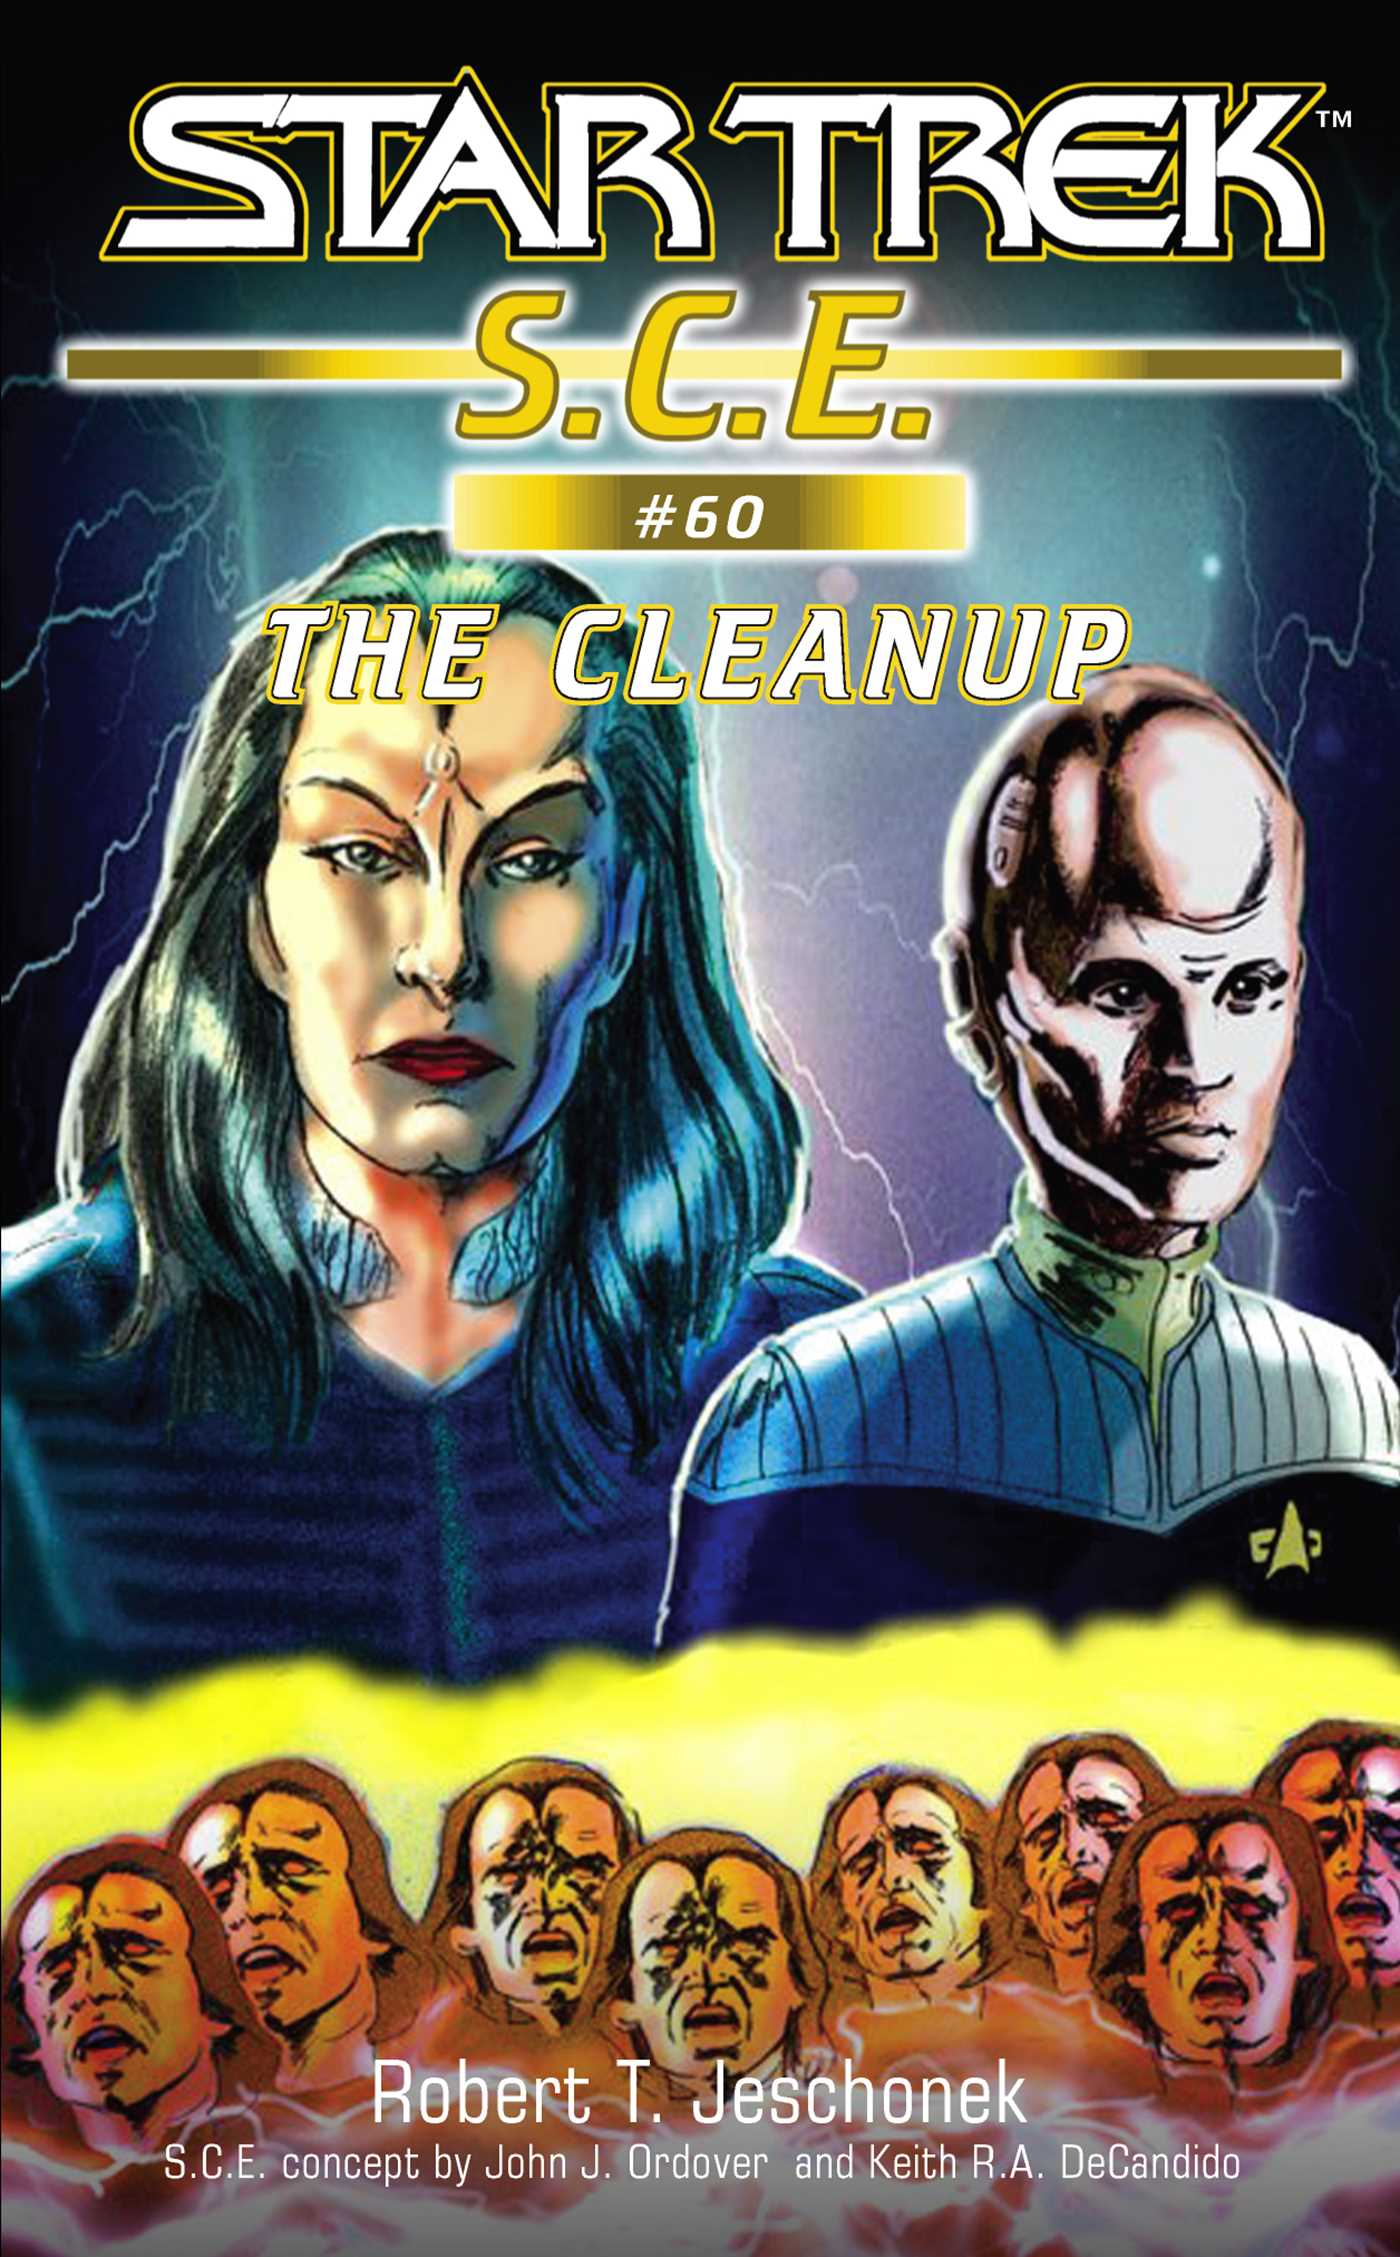 Star trek the cleanup 9781416520443 hr